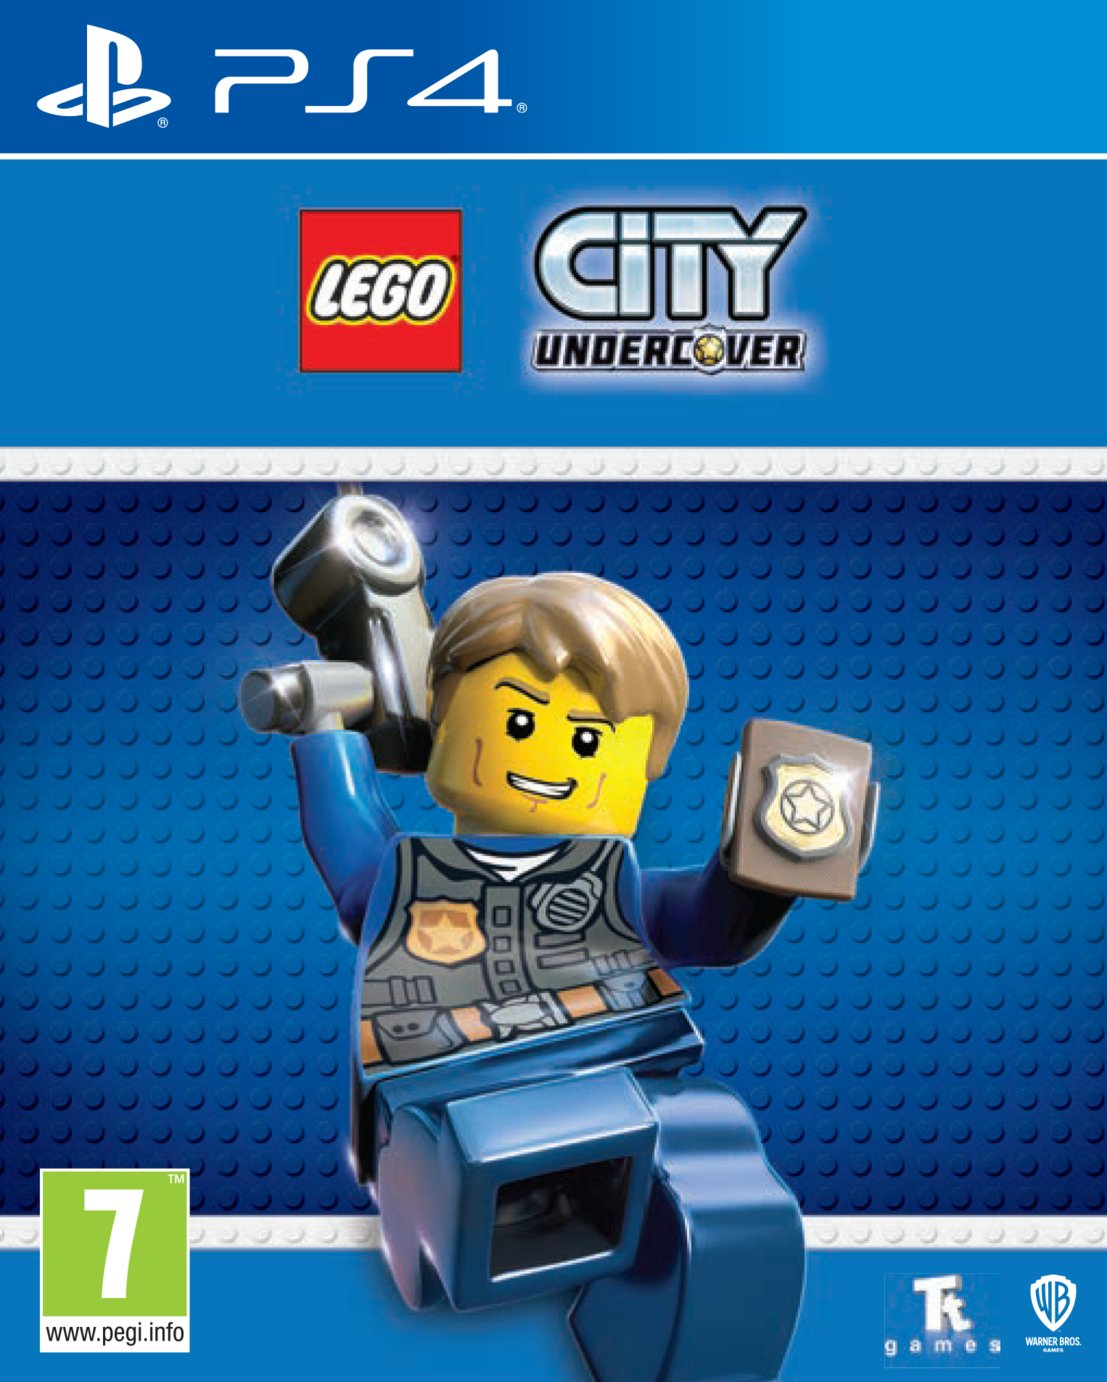 Buy LEGO City Undercover PS4 Game | PS4 games | Argos